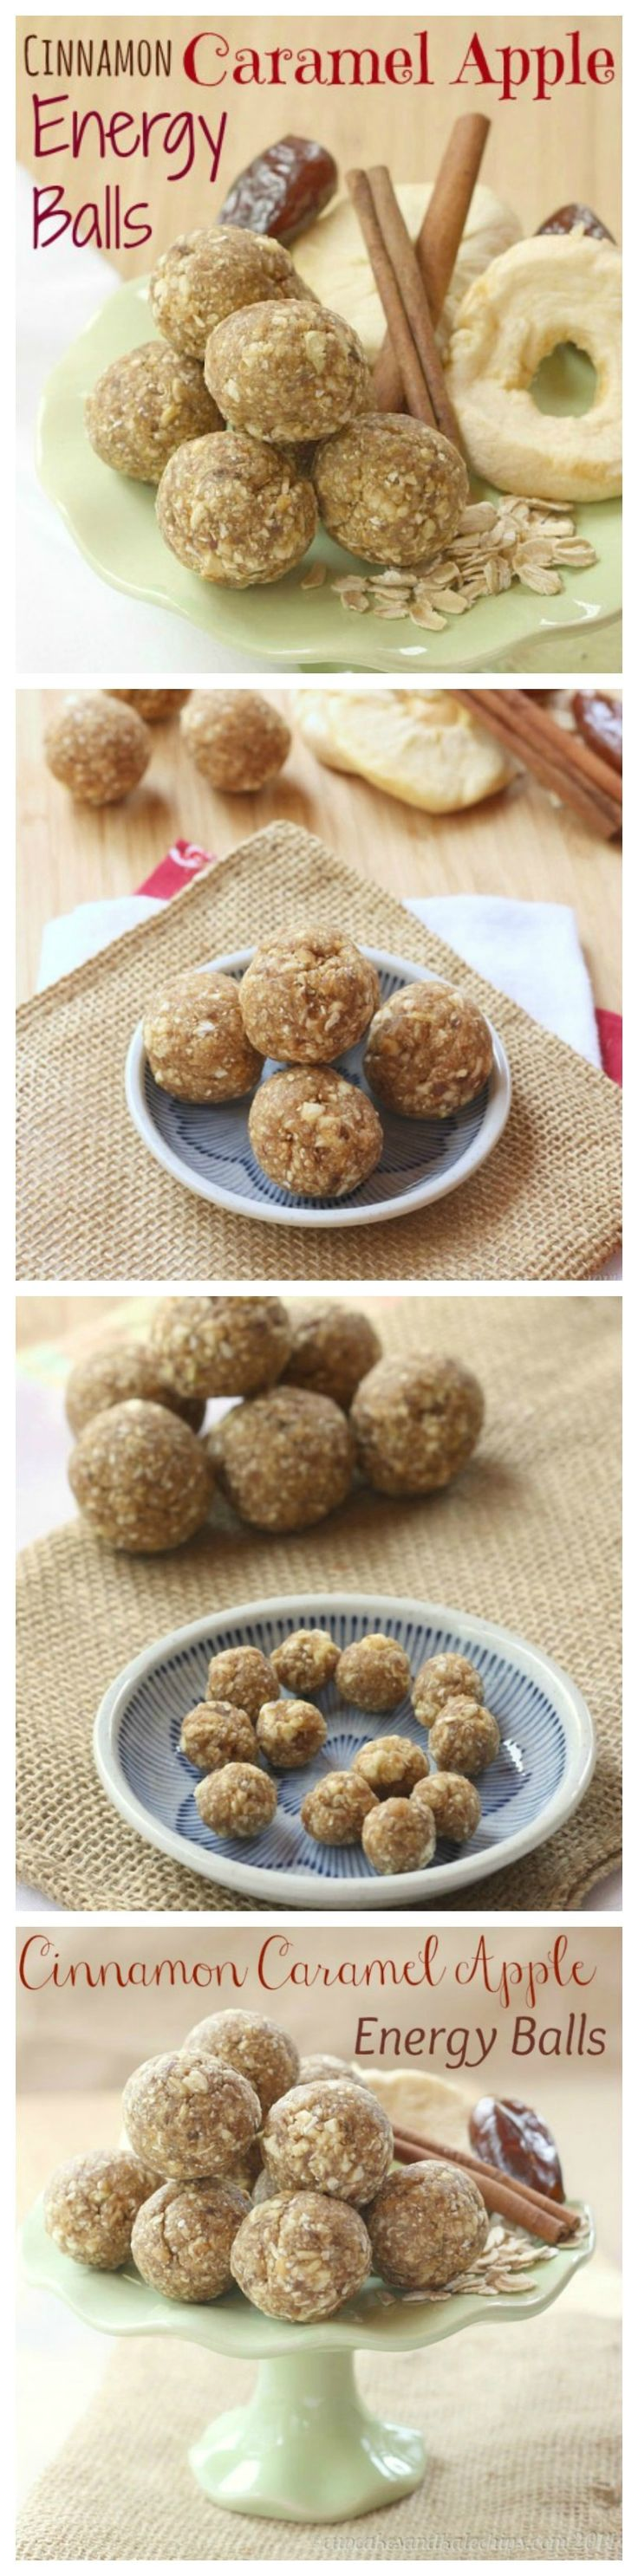 Healthy Snacks for Kids: Cinnamon Caramel Apple Energy BallsClean Eating Energy Bites, Clean Eating Recipes For Kids, Healthy Snacks, Apples Energy, Energy Snacks For Kids, Caramel Cinnamon Energy Balls, Healthy Food Recipes For Kids, Cinnamon Caramel, Caramel Apples